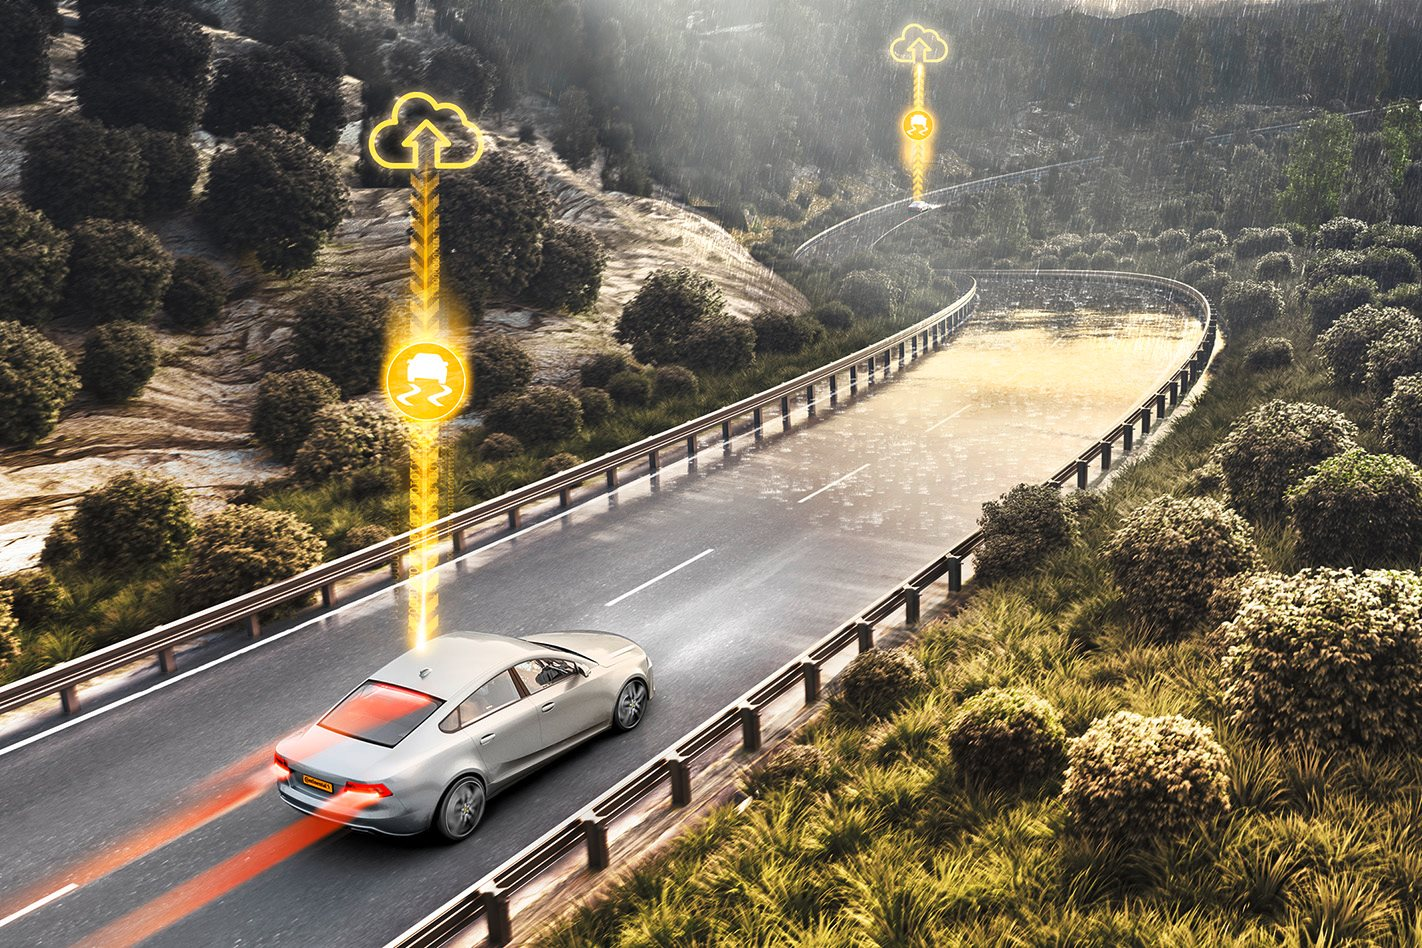 Stability control of the future will be able to predict wet roads